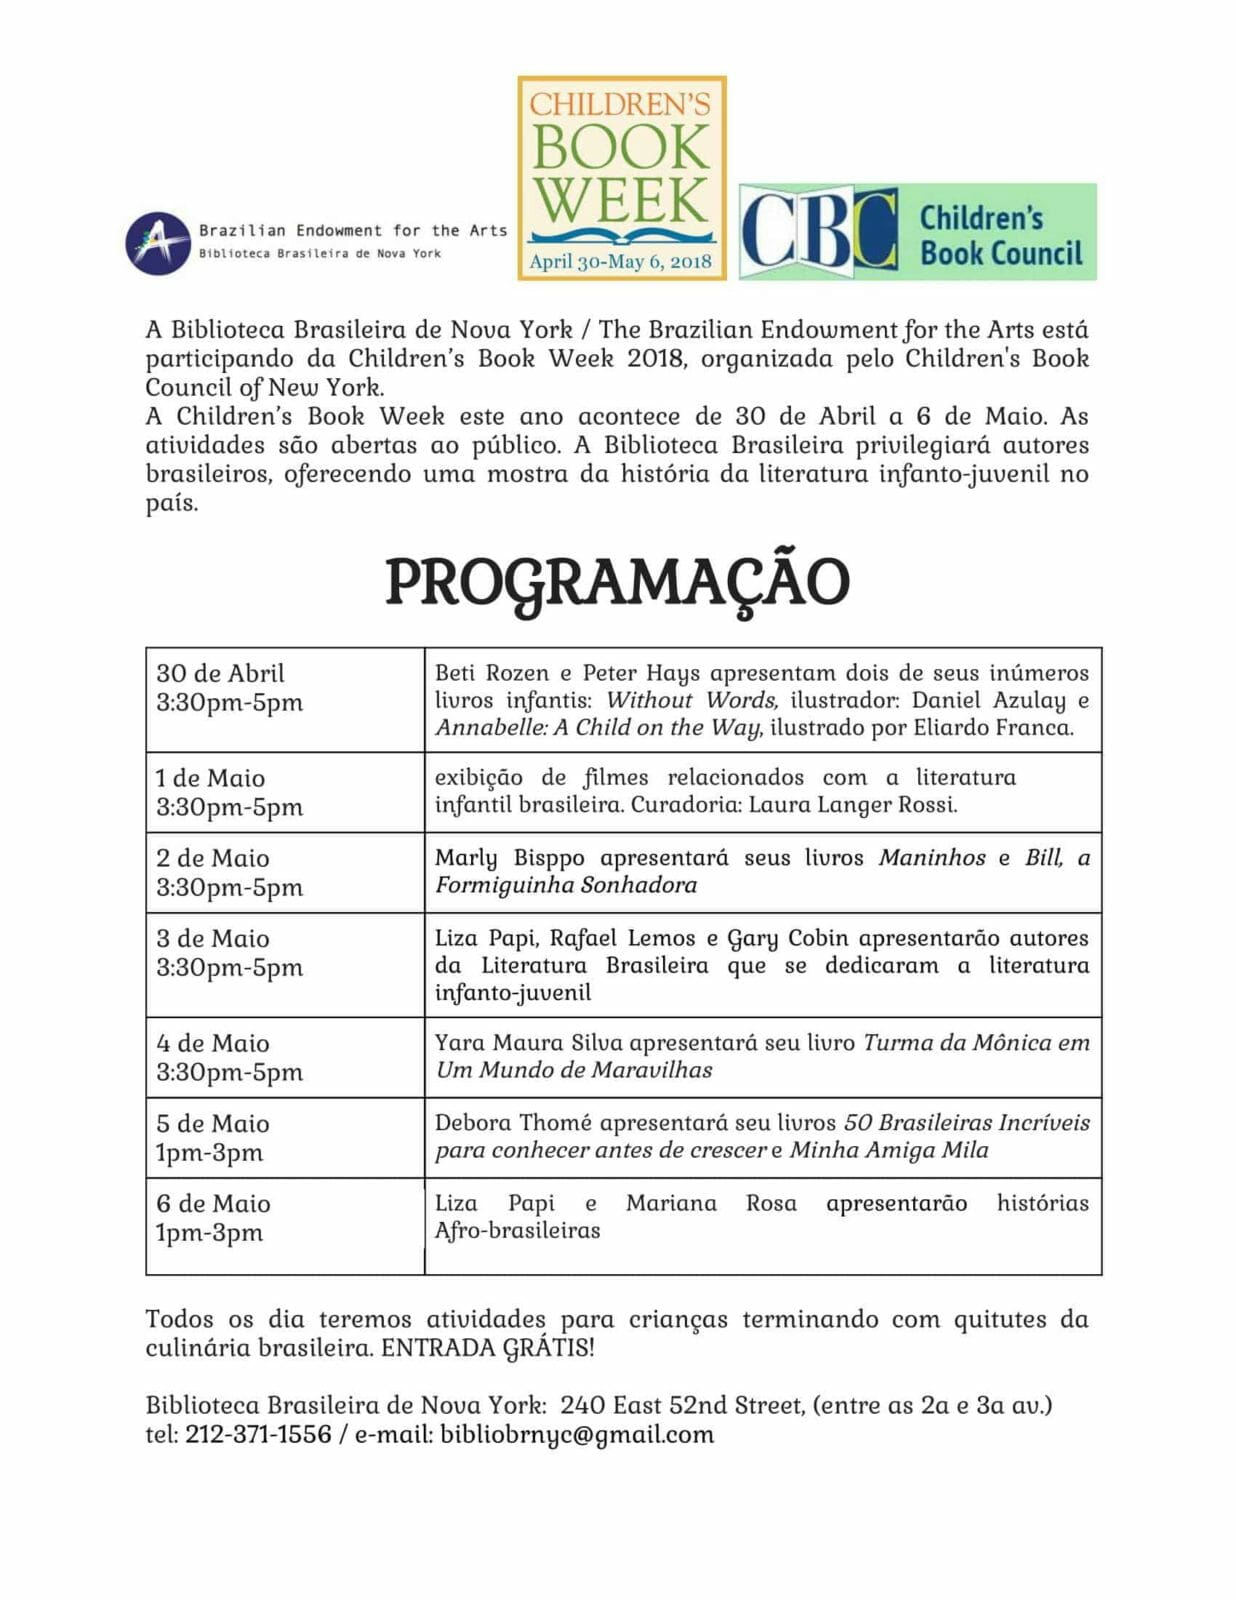 children book week program big 2 1 - A Biblioteca Brasileira de Nova York convida as Crianças para a Children's Book Week